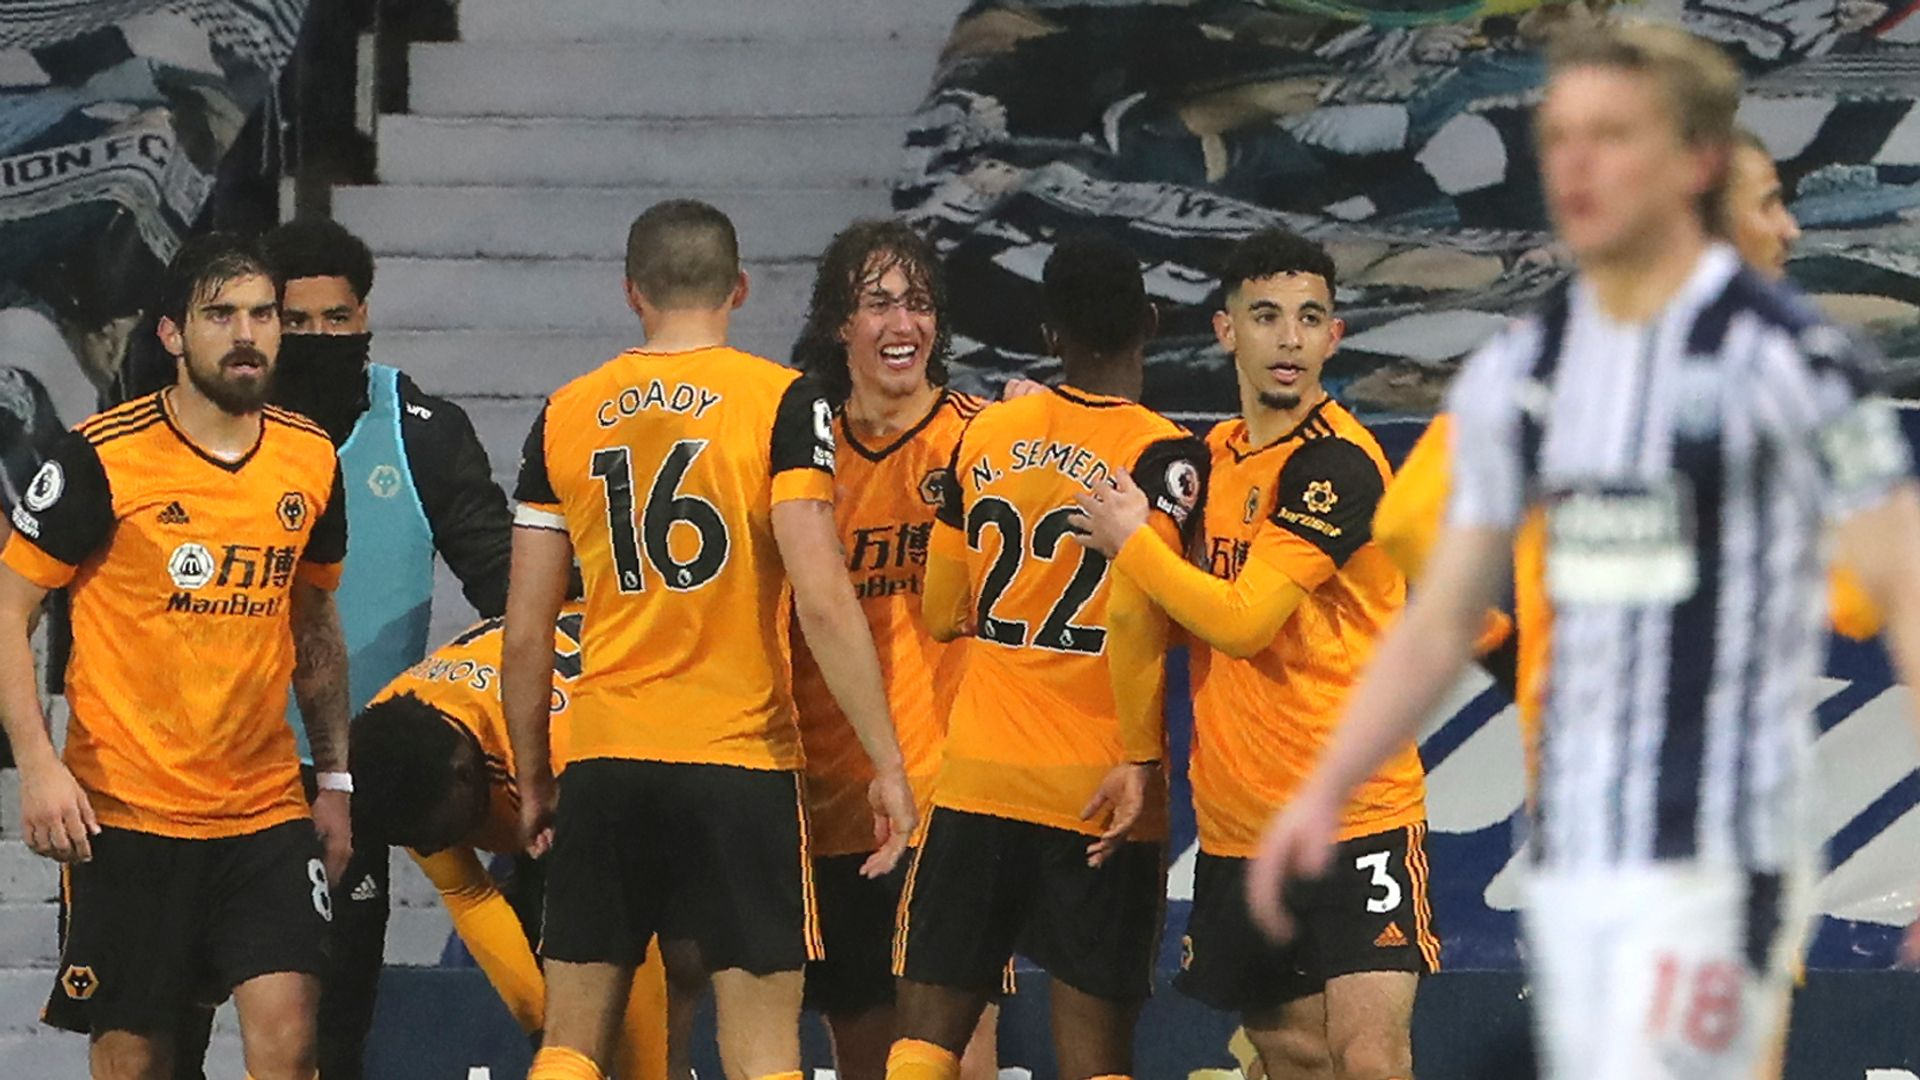 West Brom Vs. Wolves (Source AsumeTech)